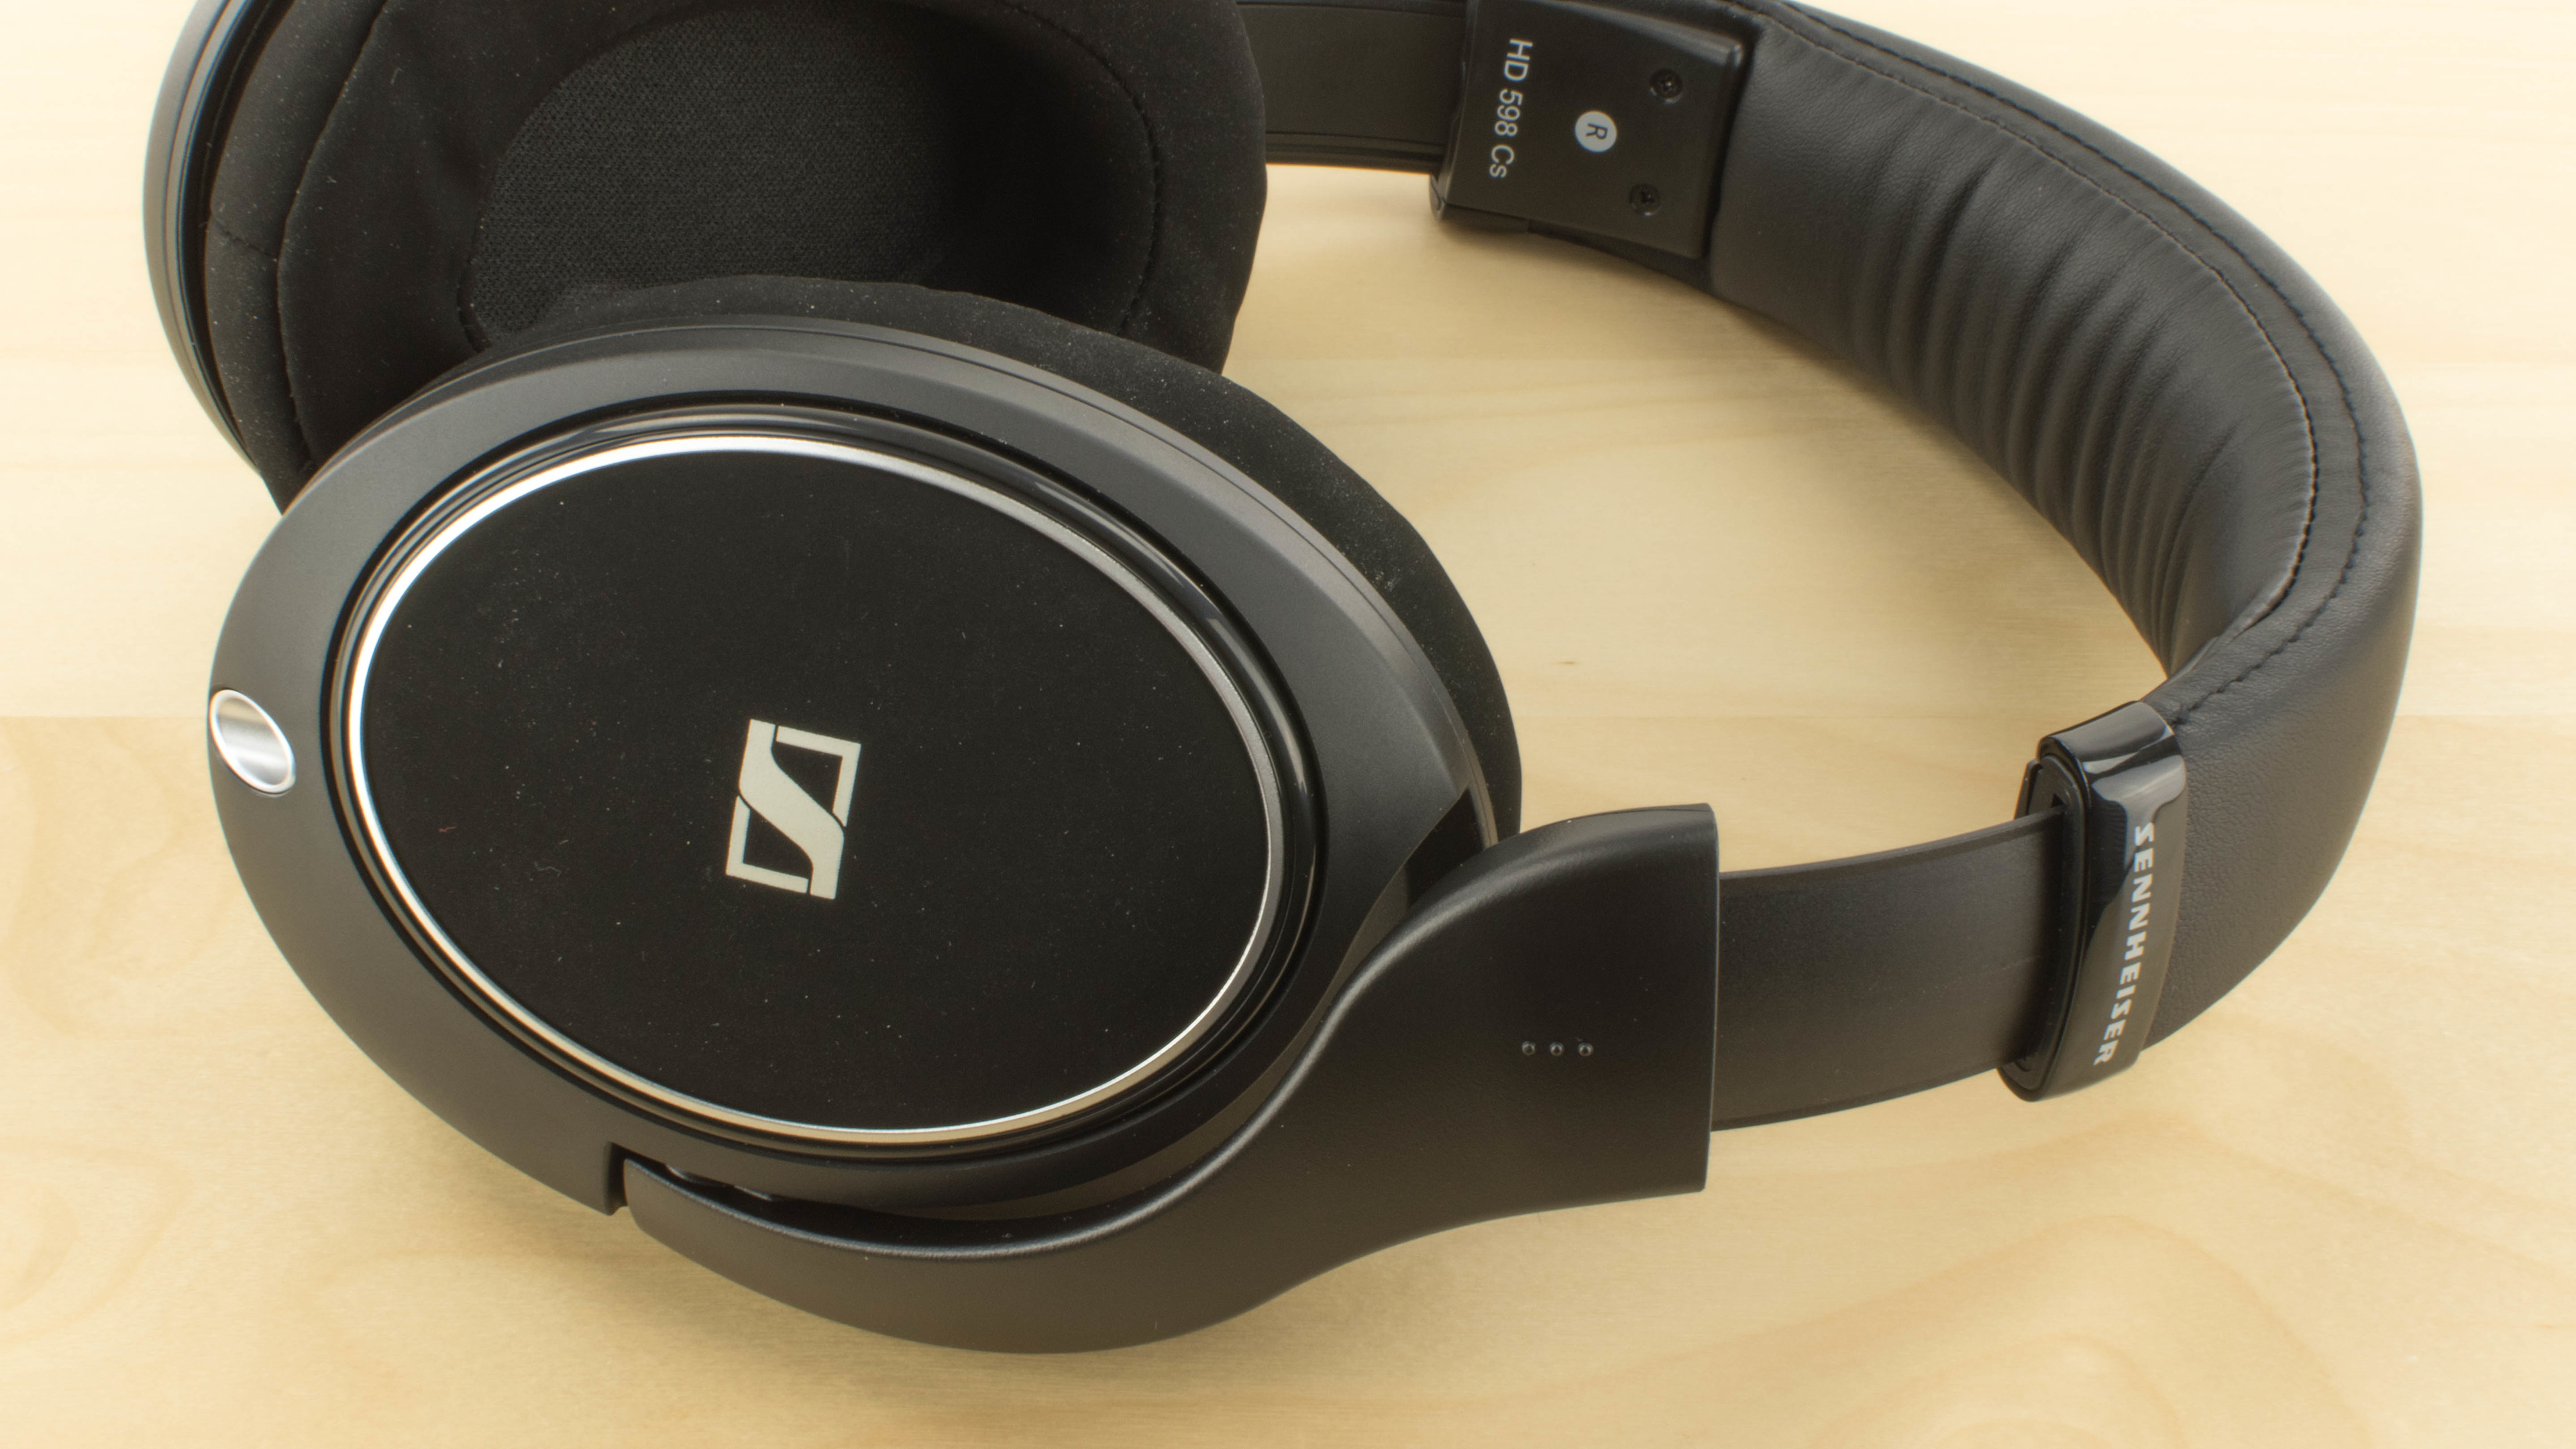 Sennheiser HD 598 Cs Build Quality Picture